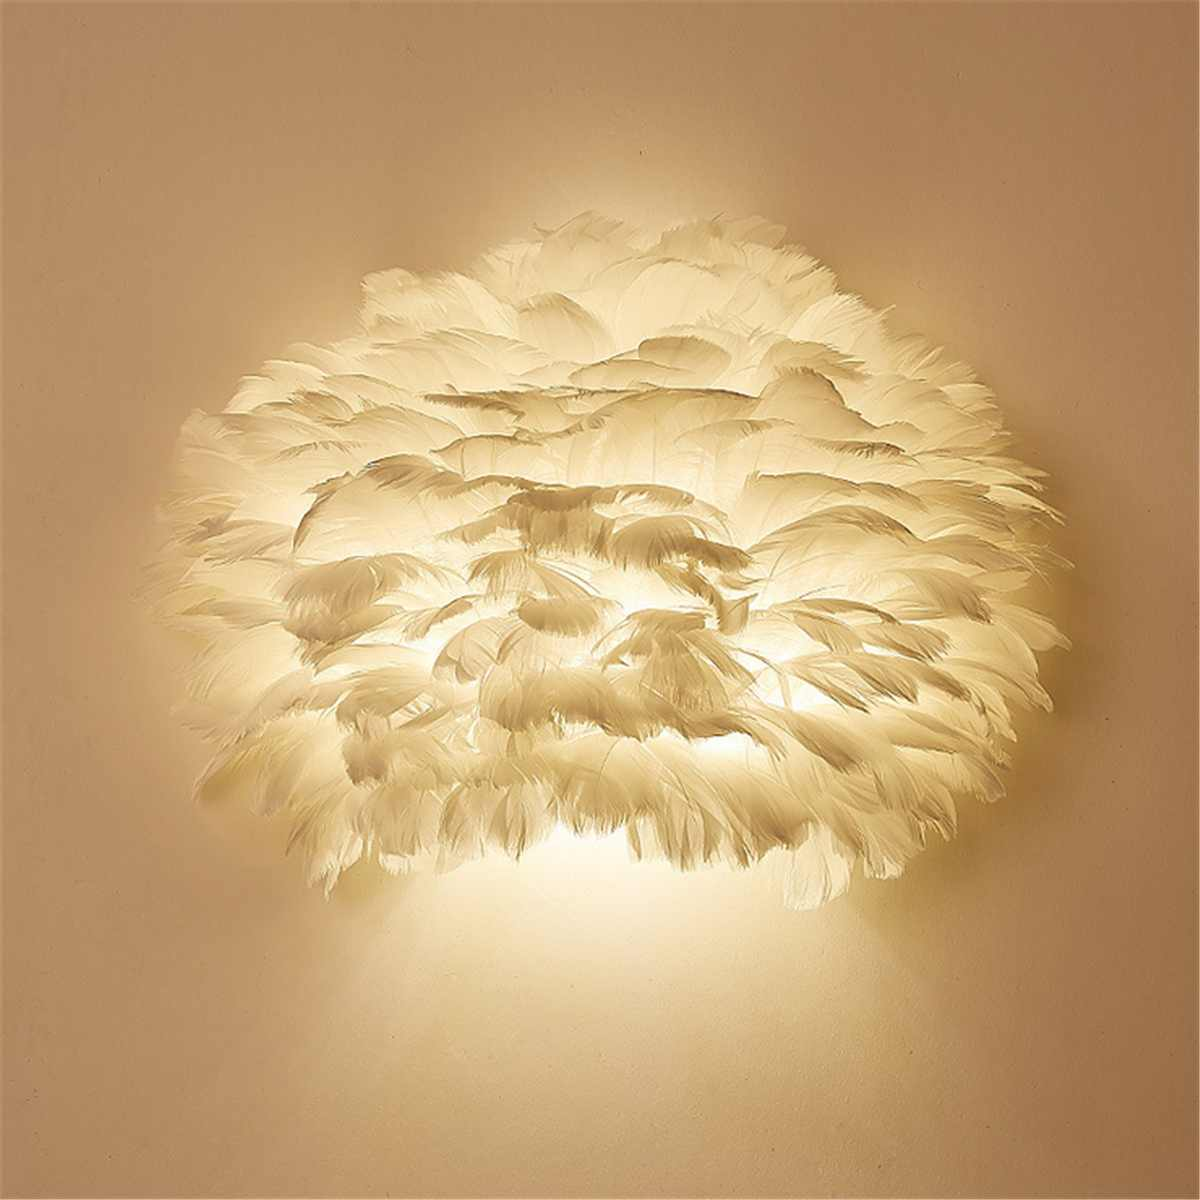 Thrisdar Nordic Feather LED Wall Lamps With E27 Base Bedroom Bedside Creatives Wall Light Hotel Restuarant Corridor Wall LightThrisdar Nordic Feather LED Wall Lamps With E27 Base Bedroom Bedside Creatives Wall Light Hotel Restuarant Corridor Wall Light